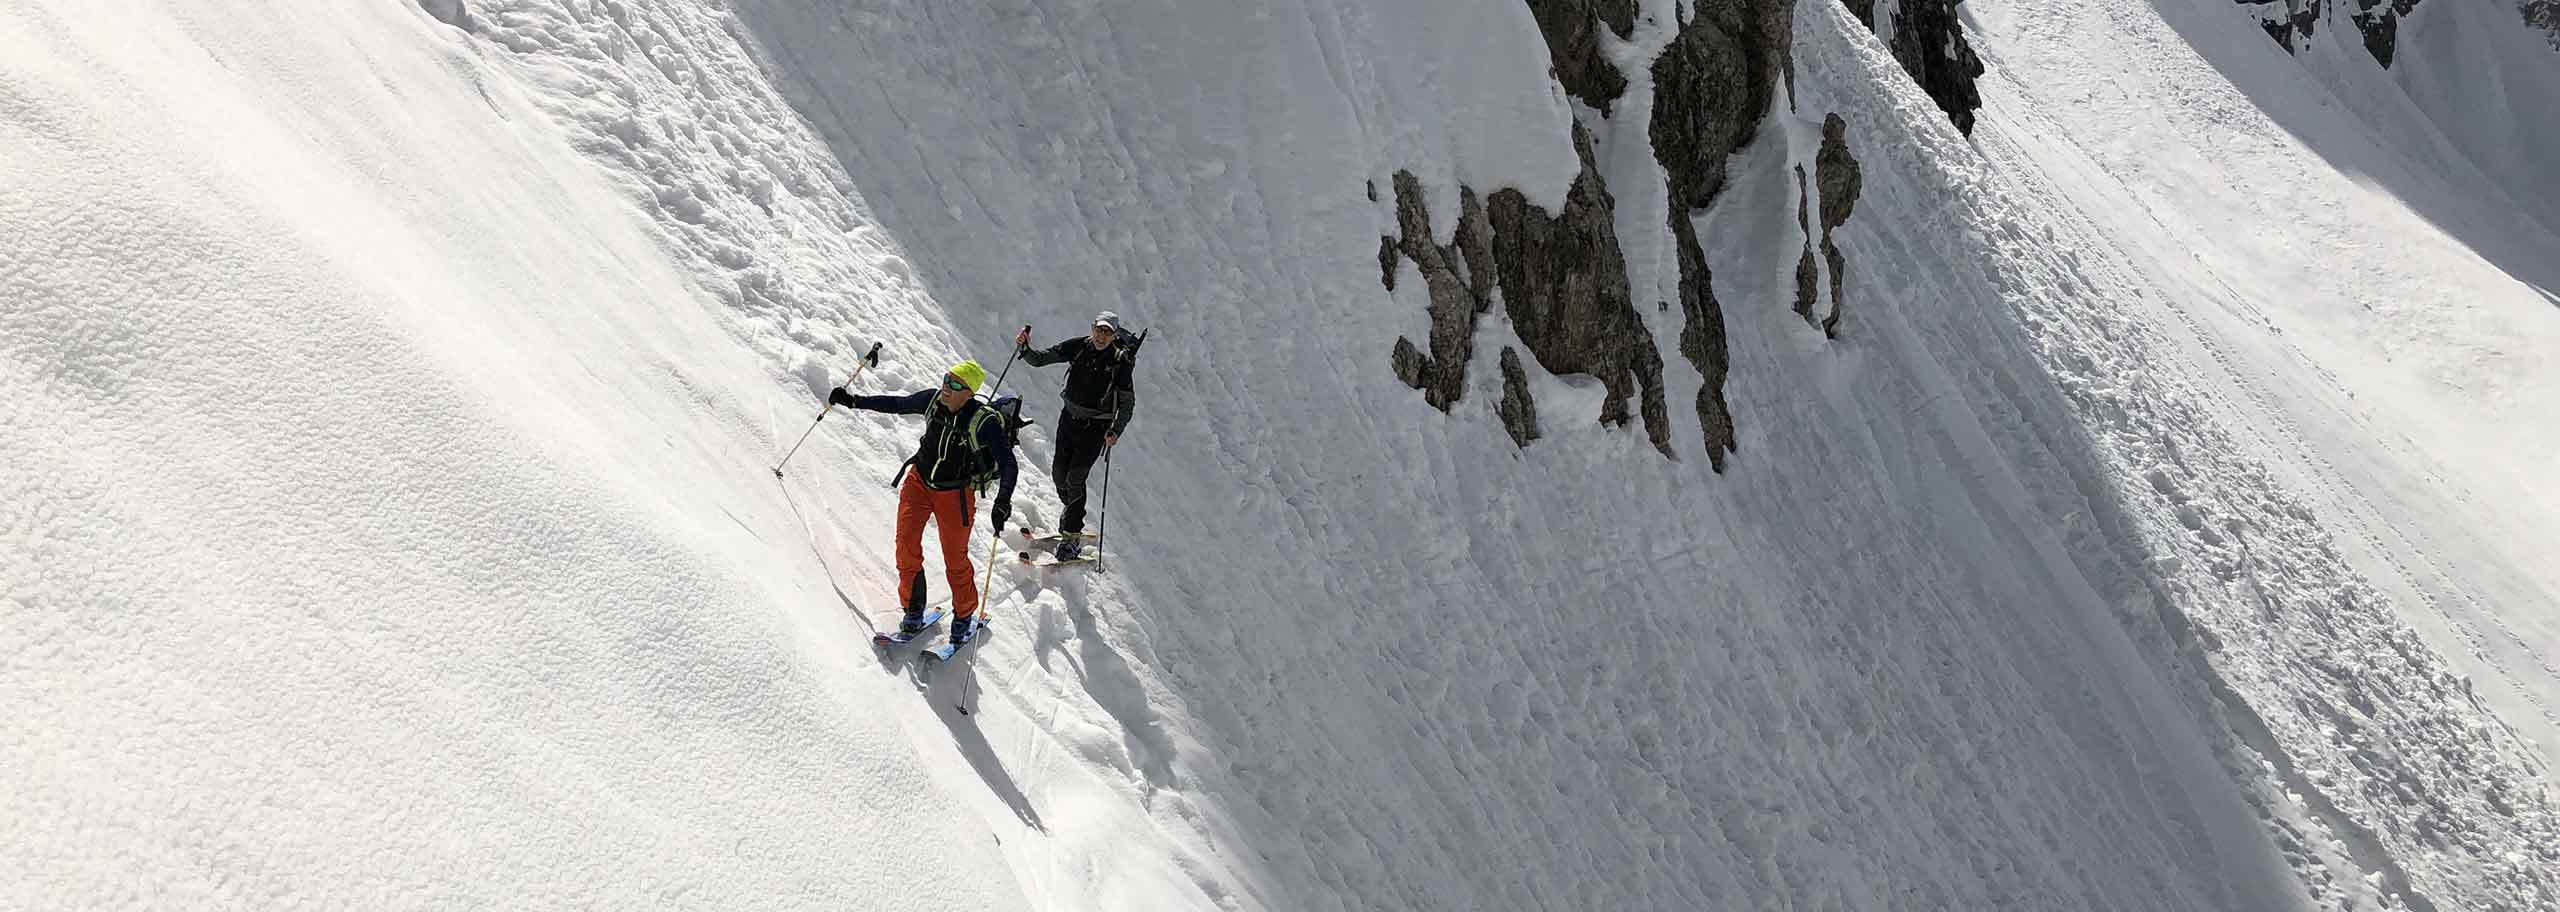 Ski Mountaineering with a Mountain Guide in Predazzo and Pampeago